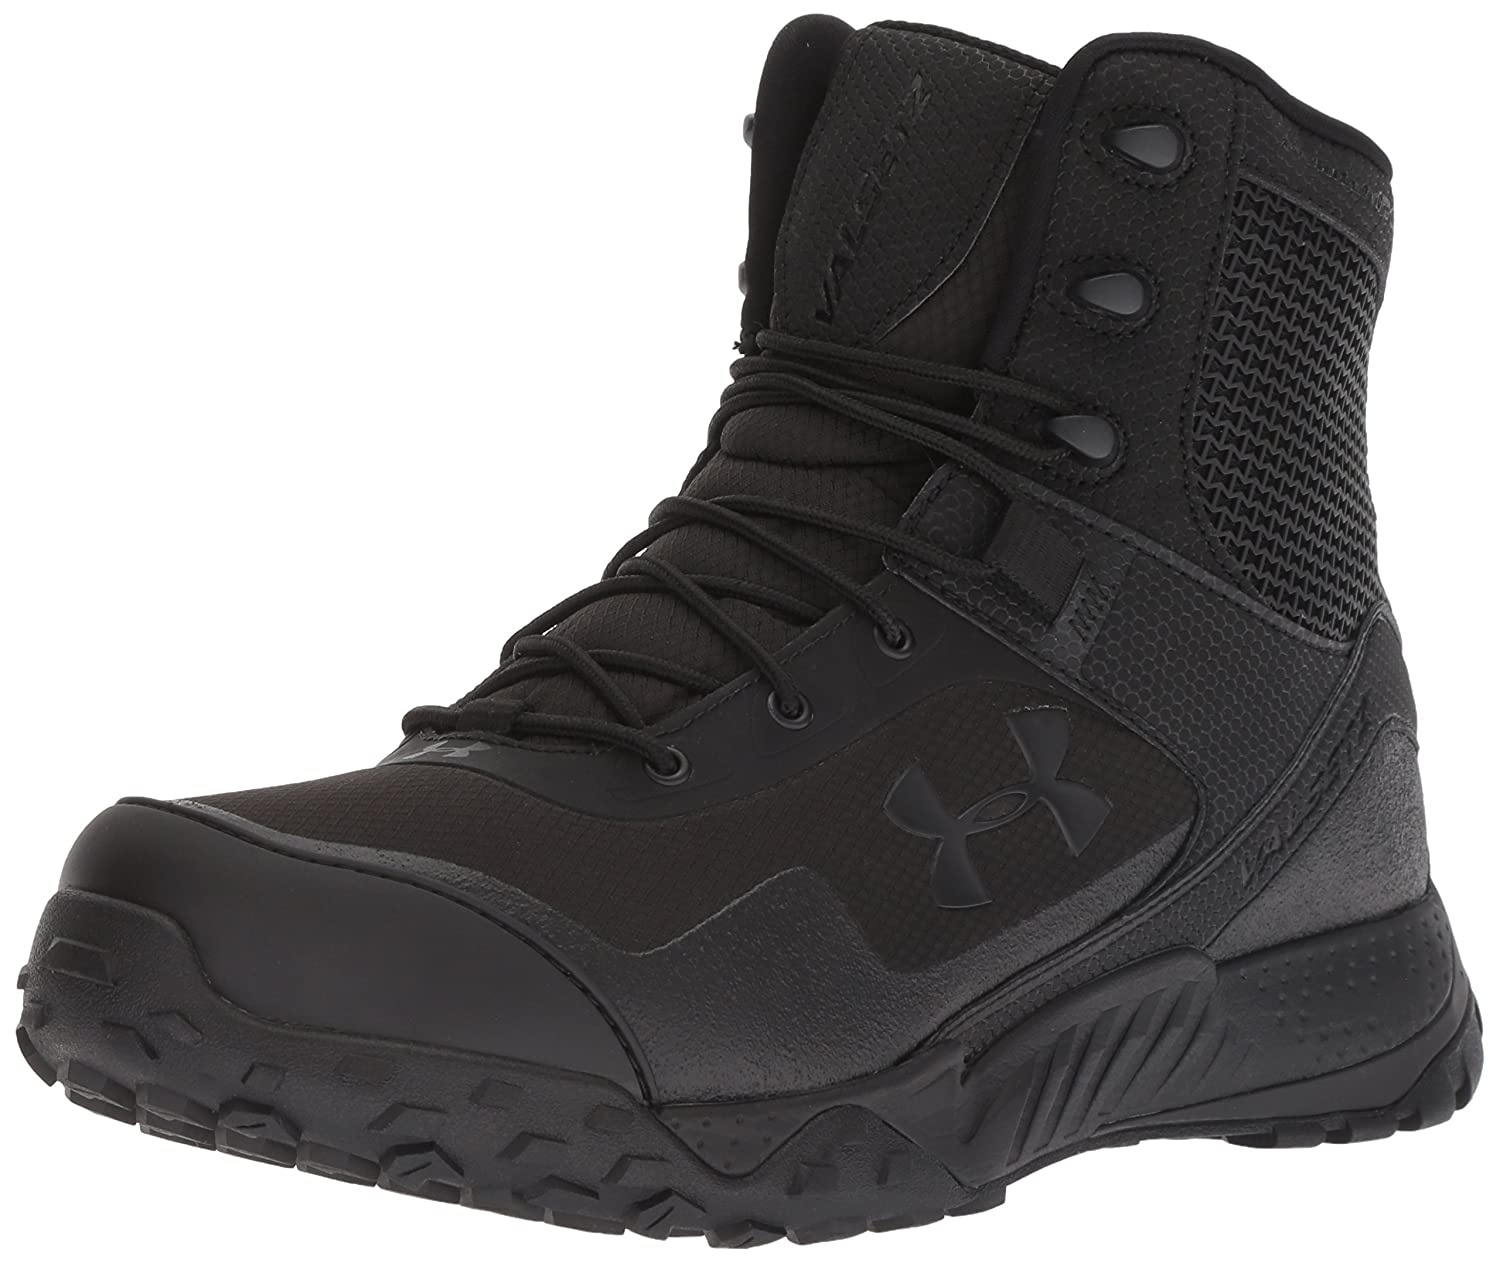 unparalleled great look unbeatable price Under Armour Men's Valsetz RTS 1.5 - Wide (4E) Military and Tactical